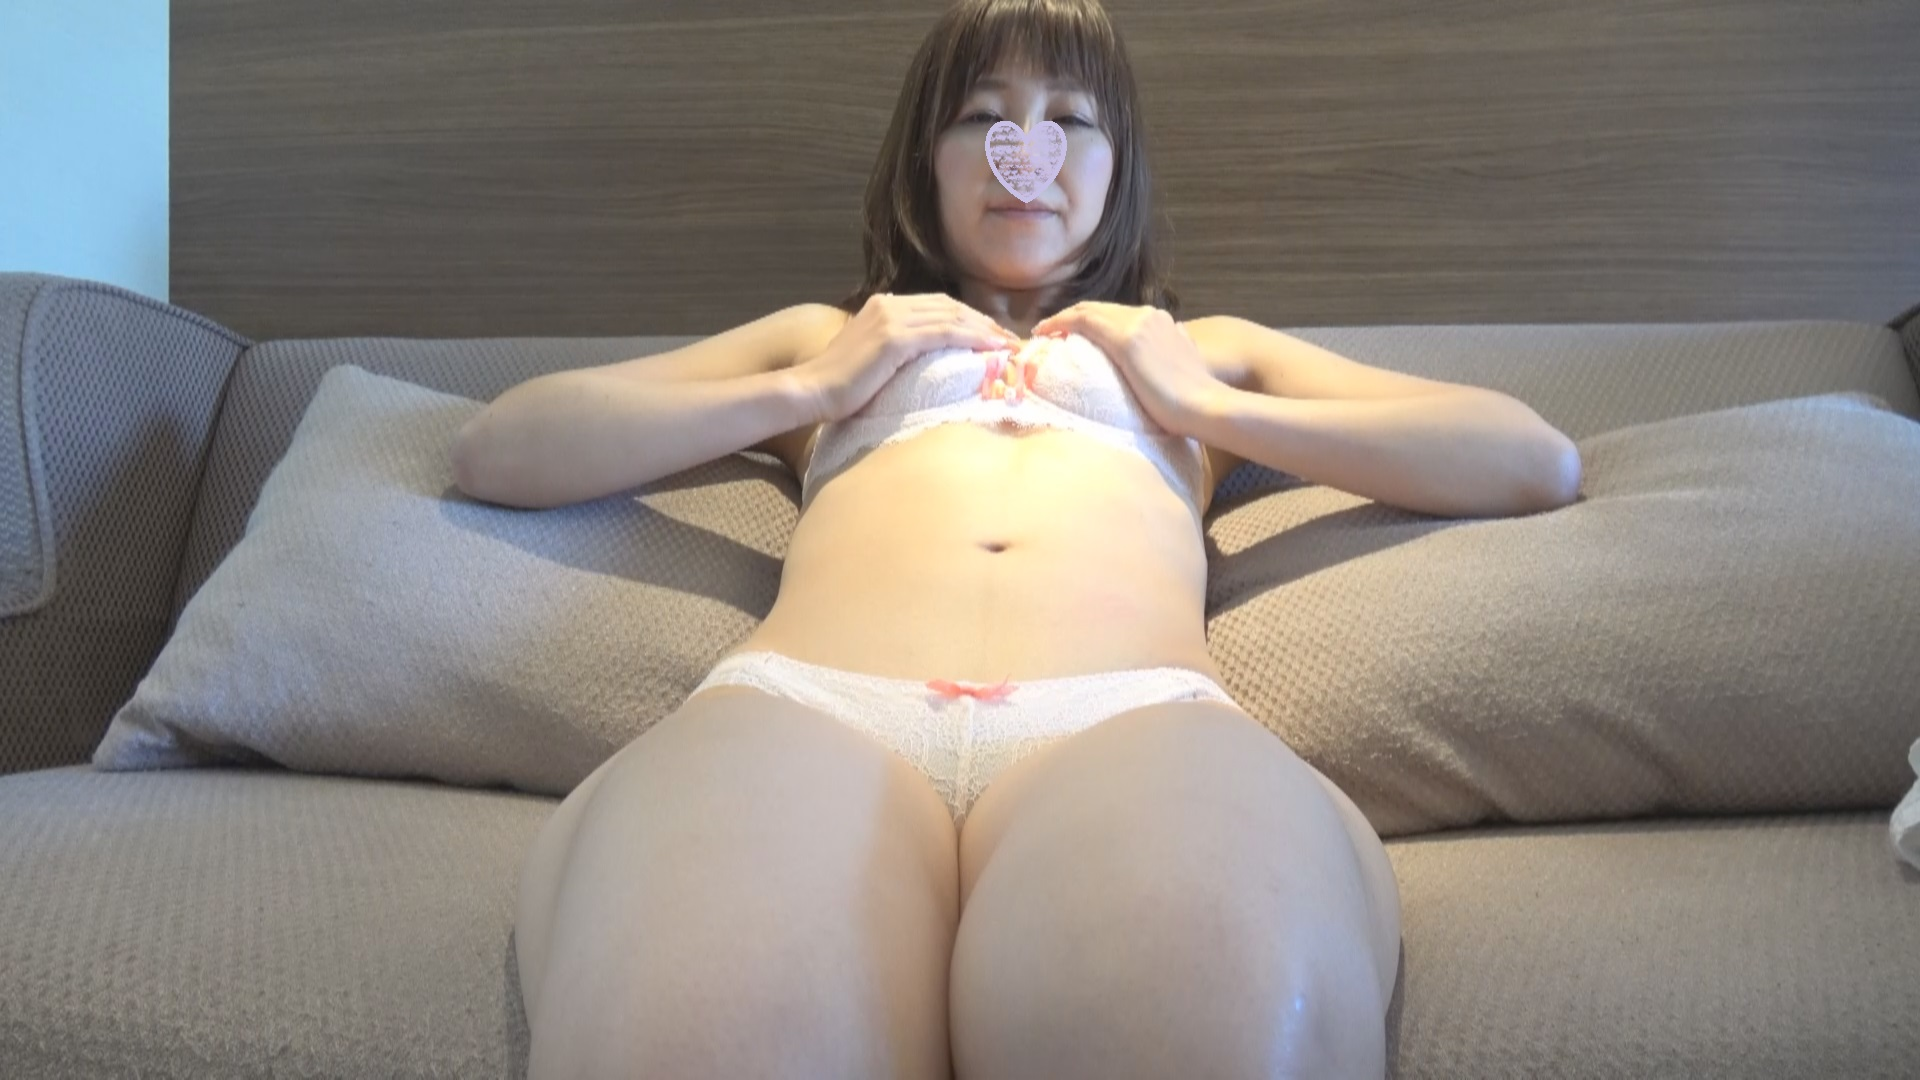 FC2 PPV 1214753 shooting Minako 37 years old self-masturbation remastered